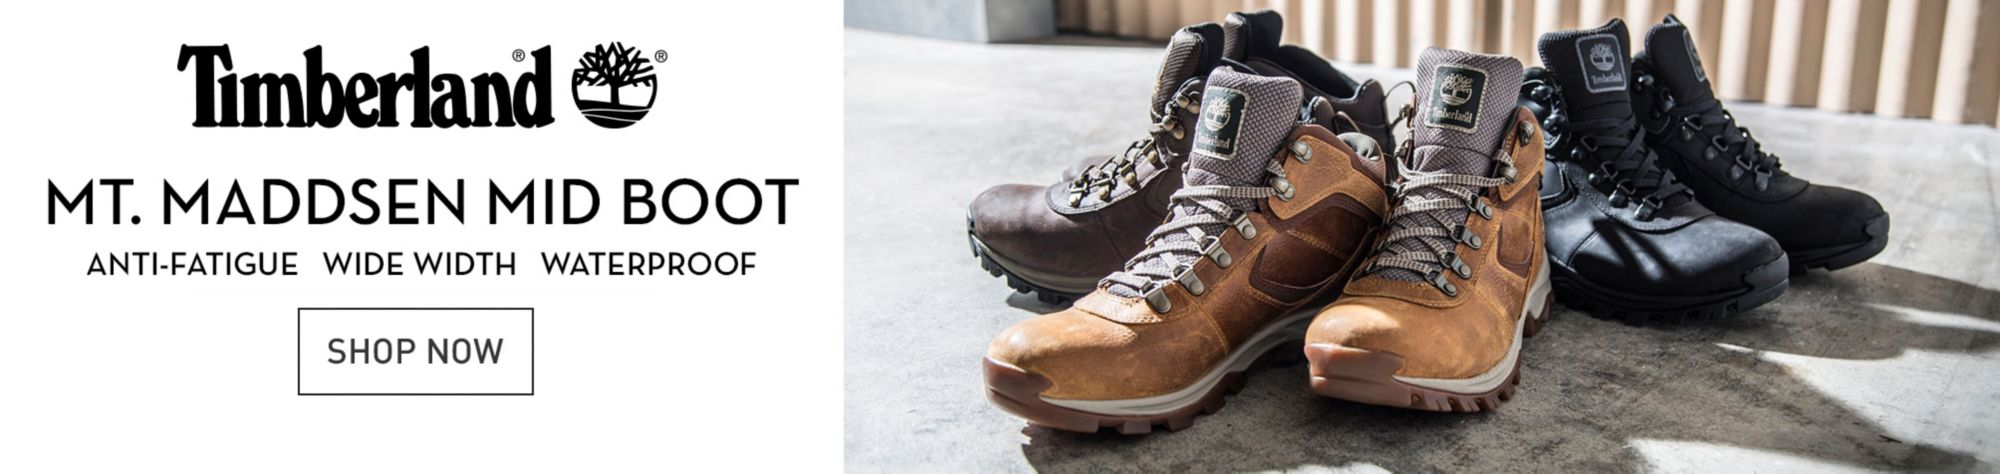 TIMBERLAND MT. MADDSEN MID BOOT